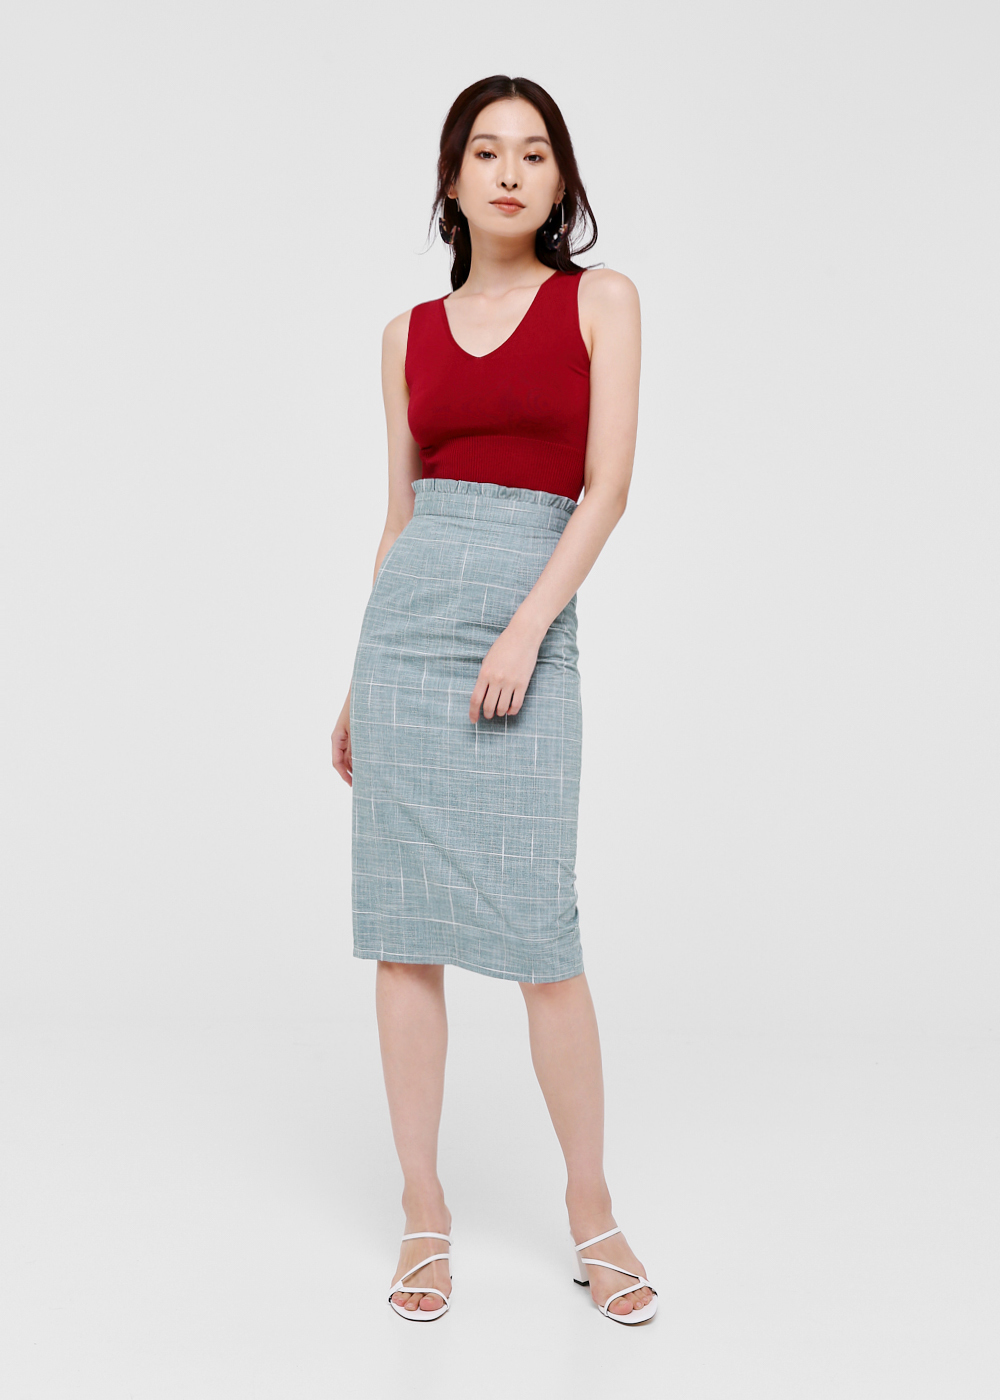 Lola Ruffle Hem Pencil Skirt